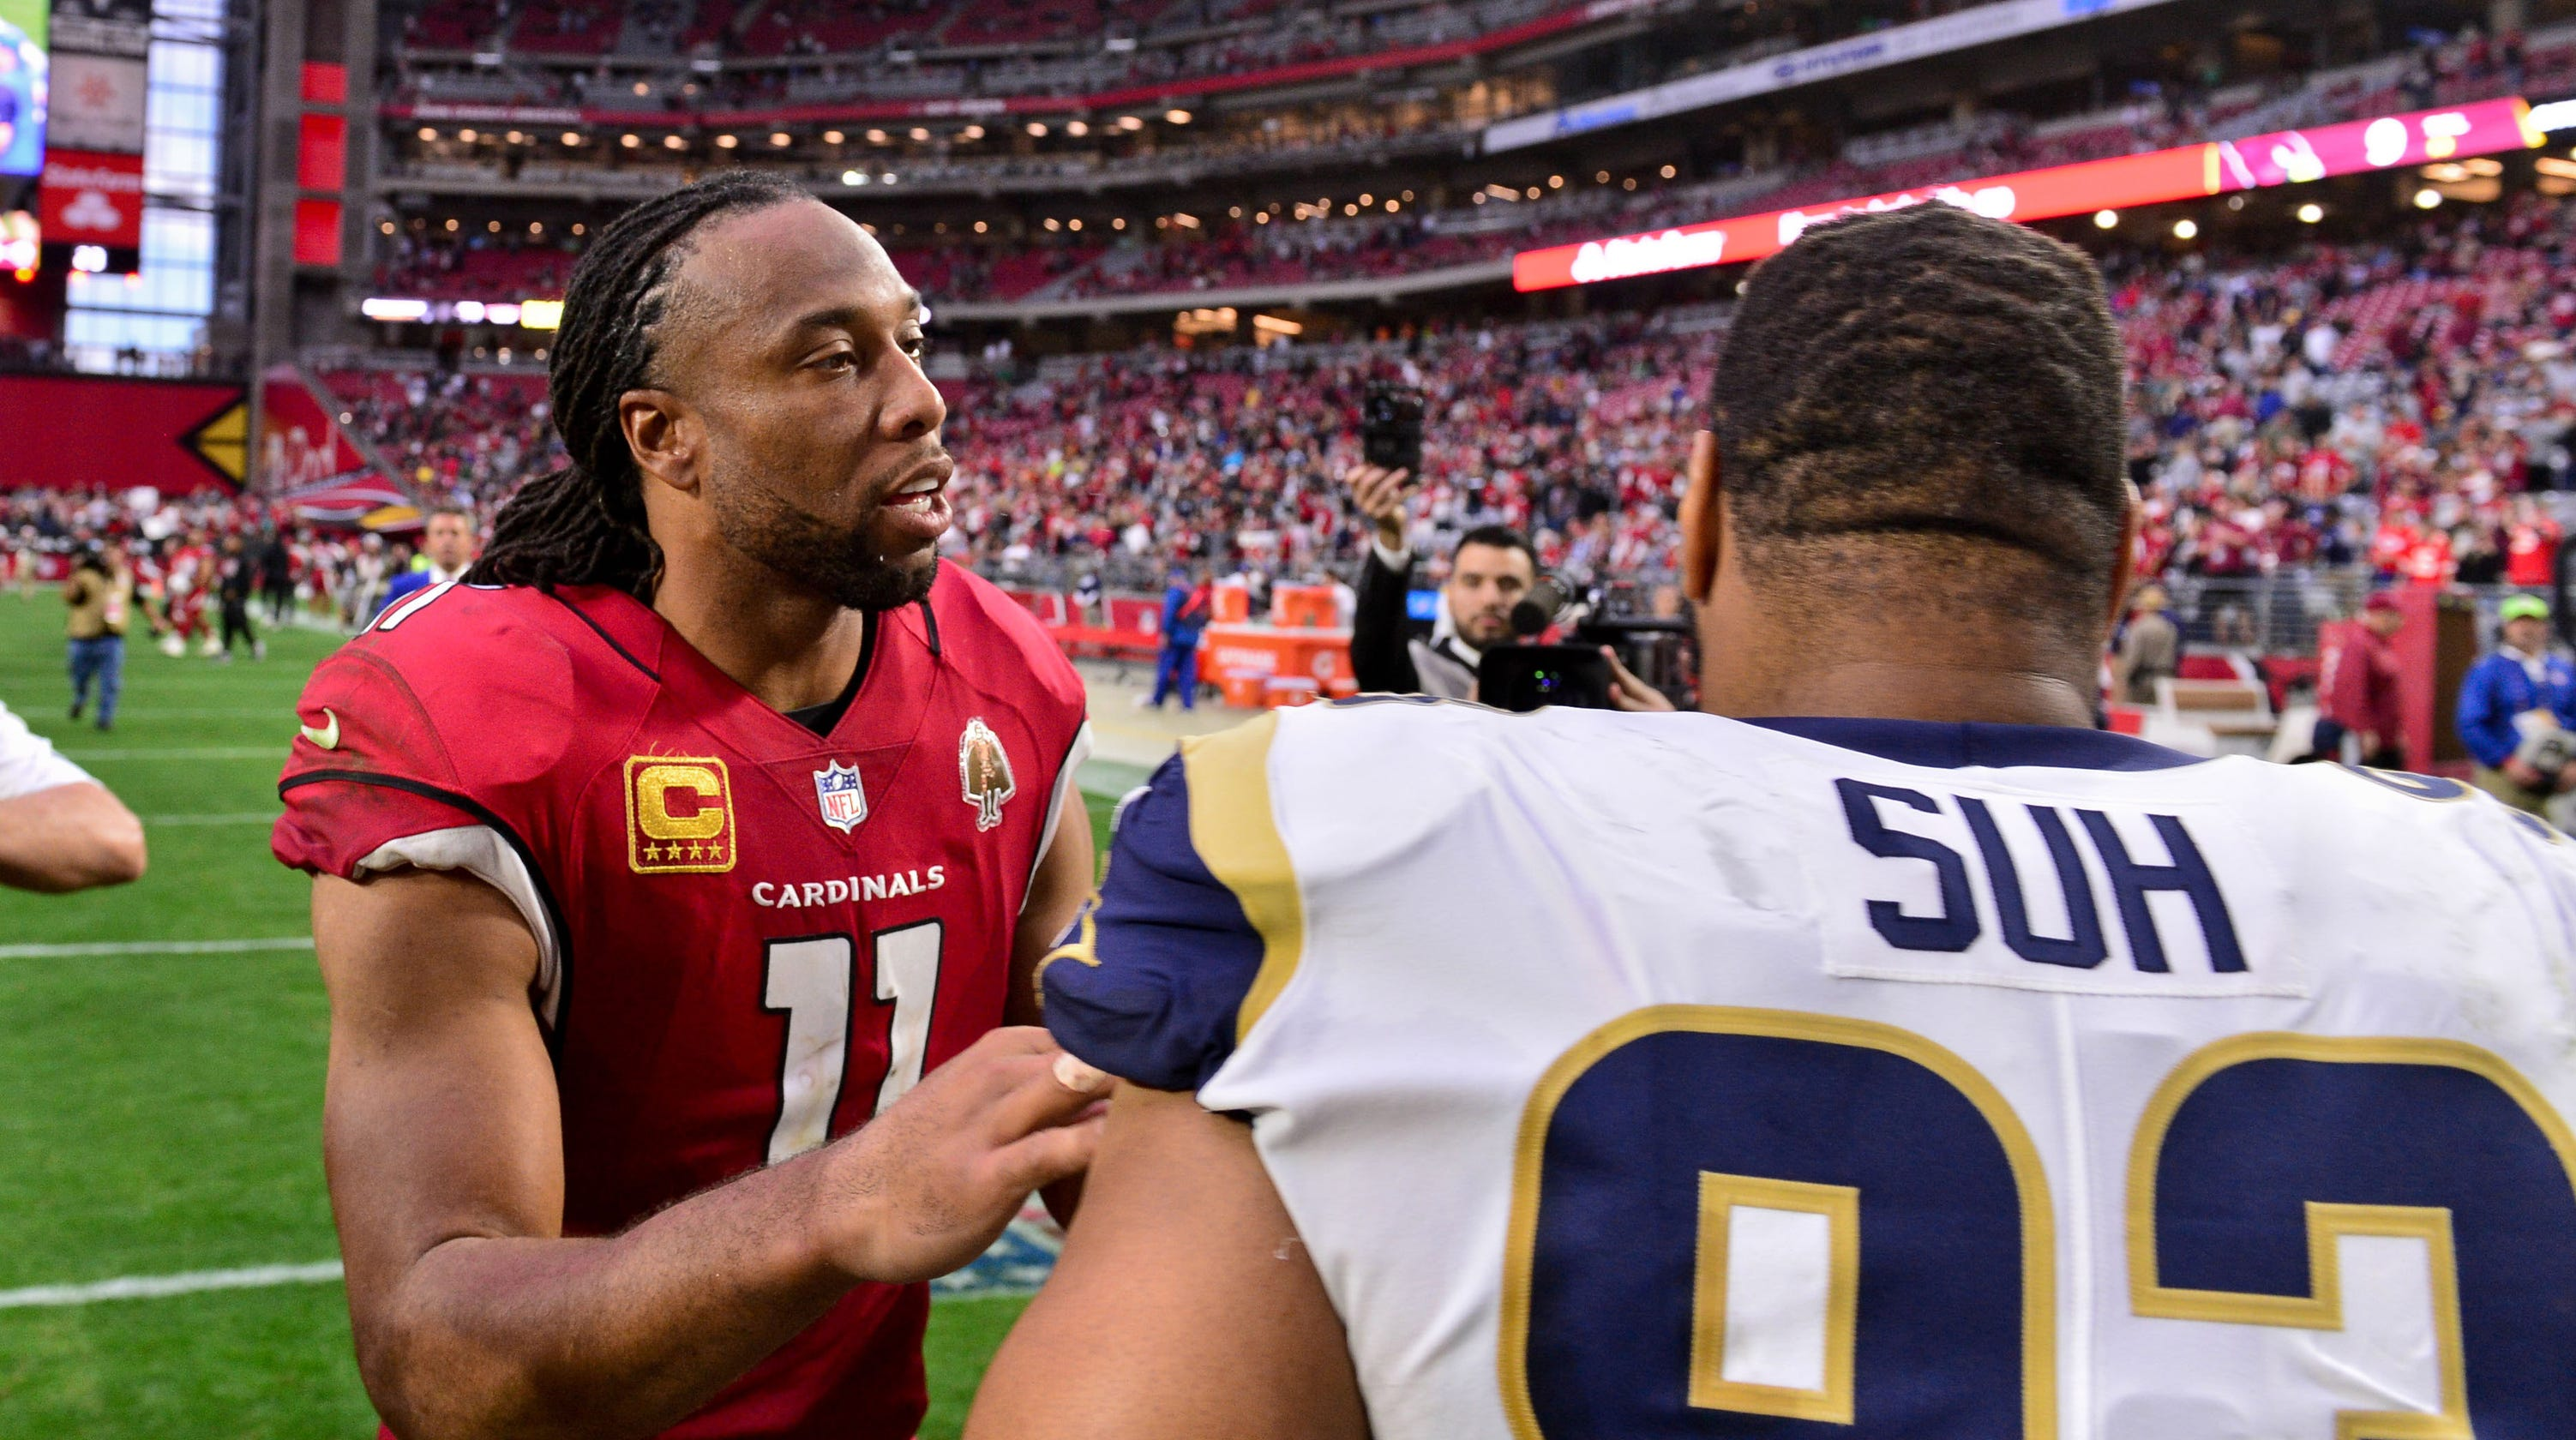 brand new 1a0dd d28b0 Larry Fitzgerald eye-poking incident with Ndamukong Suh